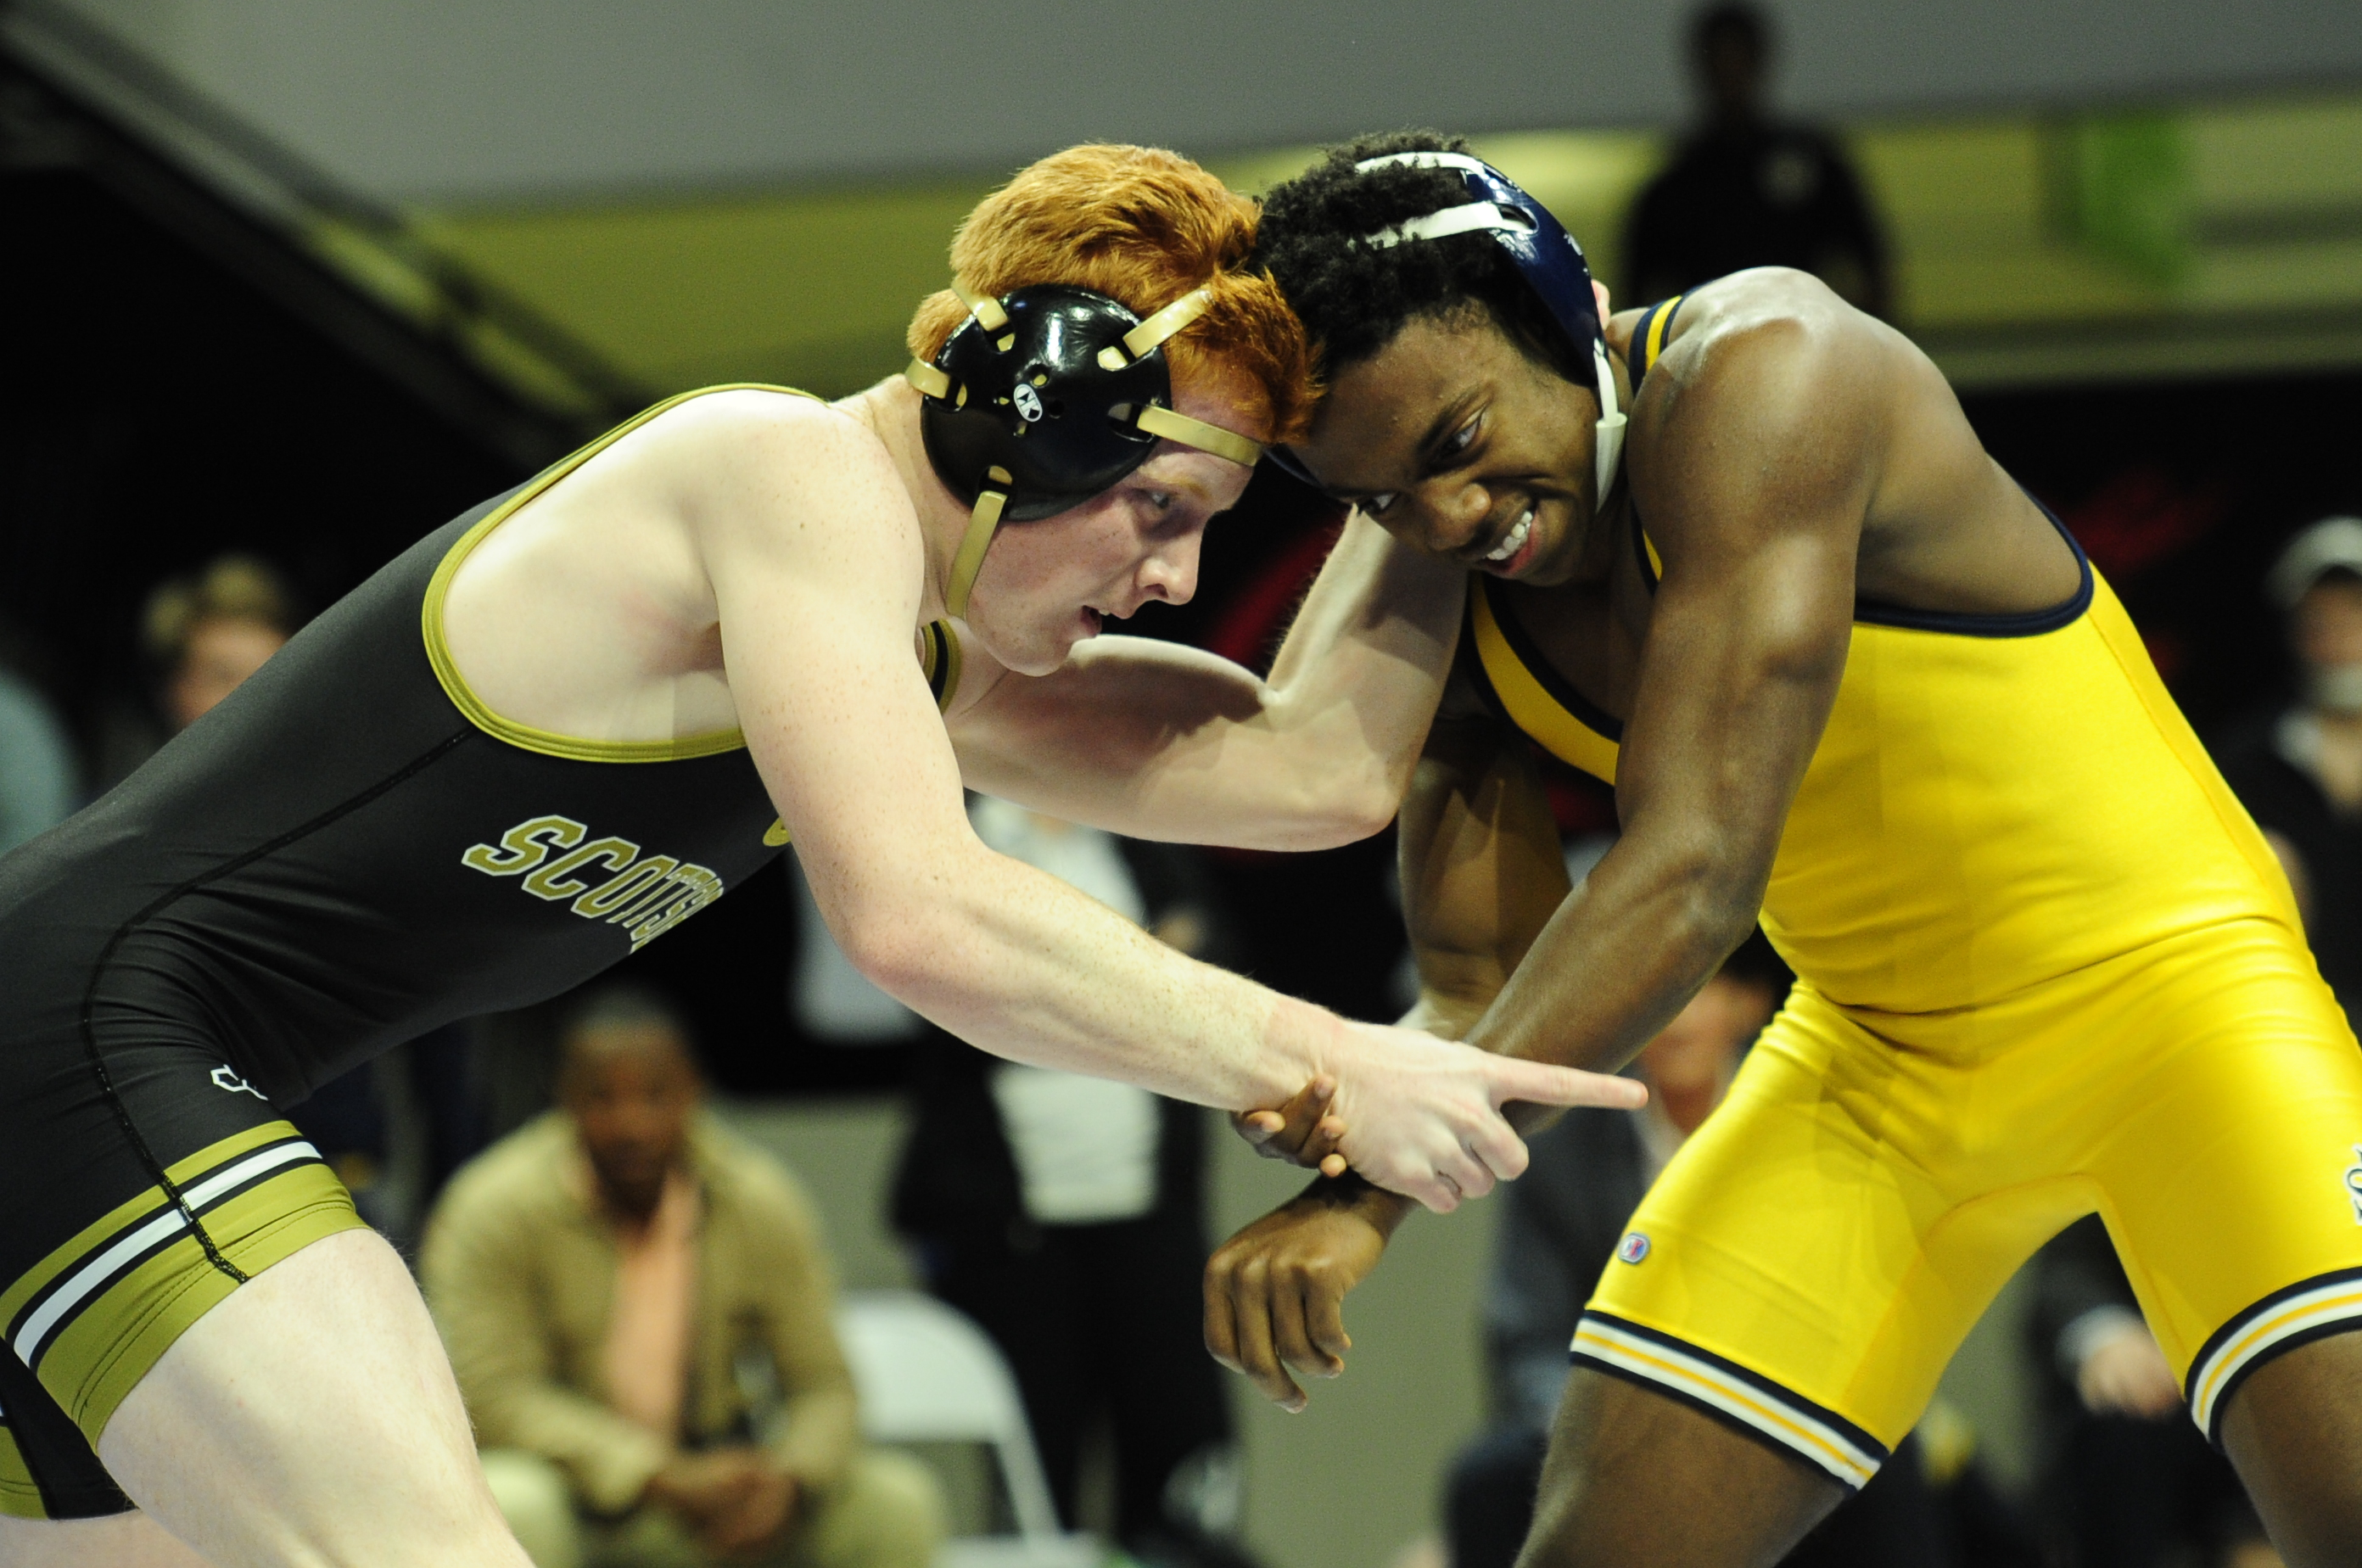 Thompson, Oxford, Scottsboro Capture AHSAA Wrestling Duals Tourney Titles at Bill Harris Arena